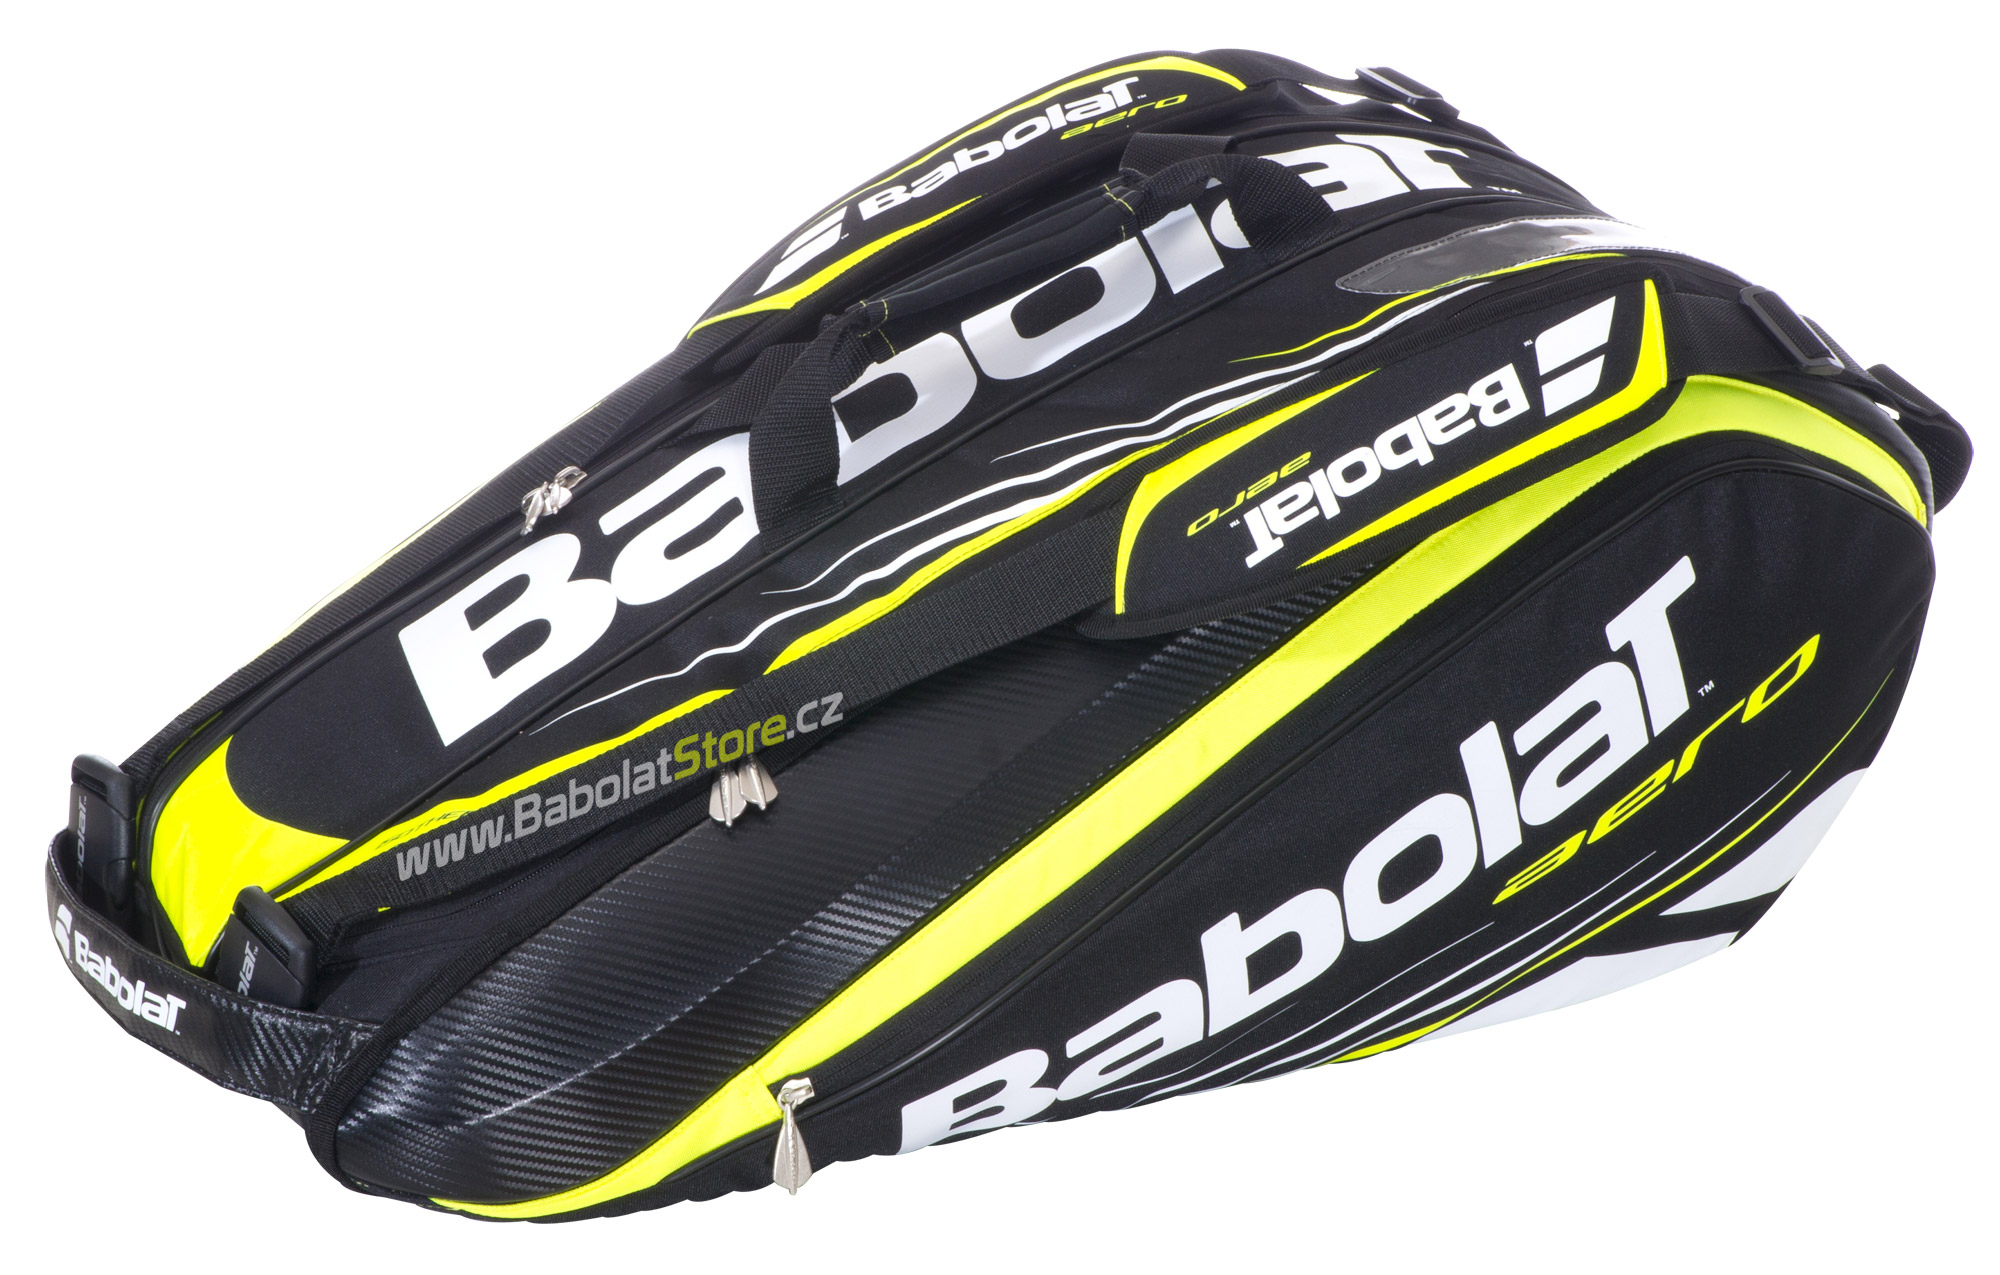 Babolat Aero Racket Holder X9 2013